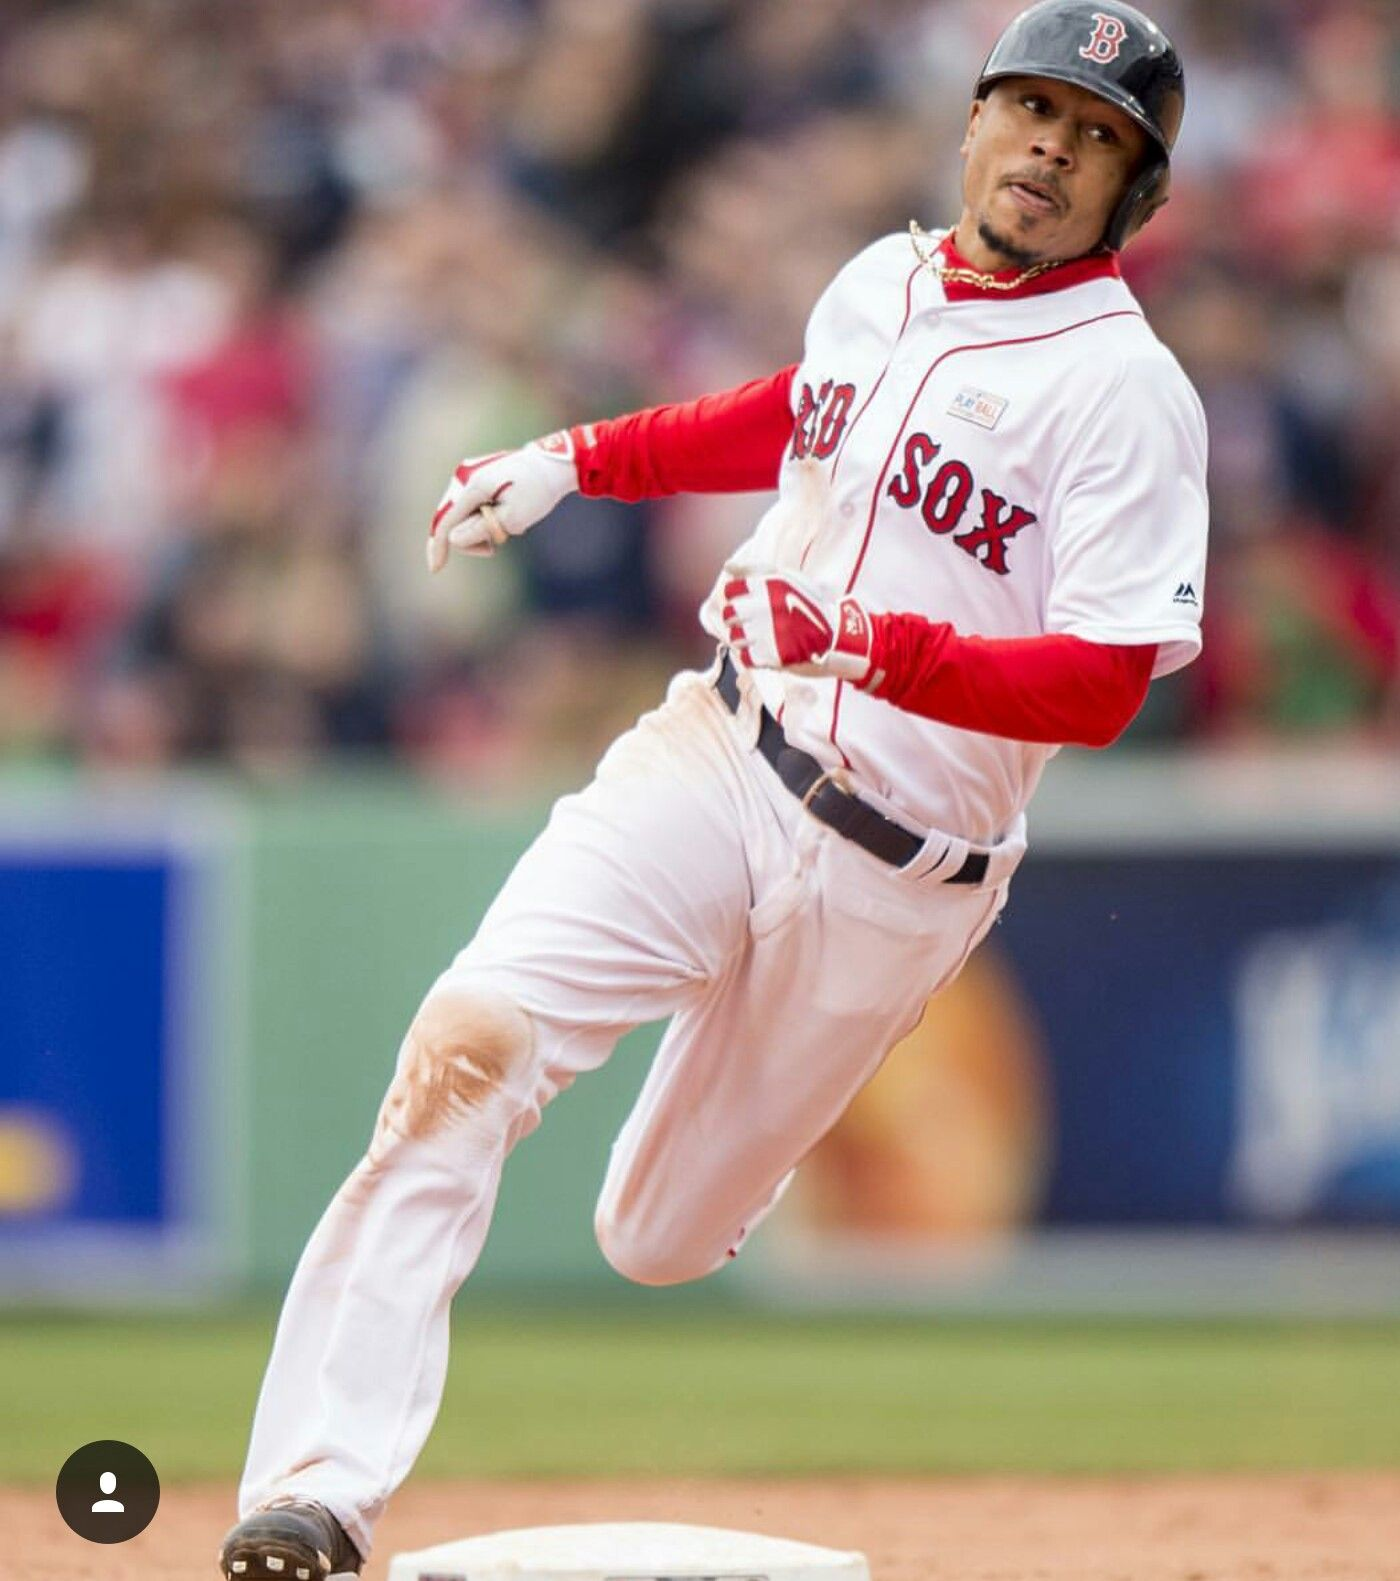 Mookie Red sox nation, Red sox baby, Boston sports